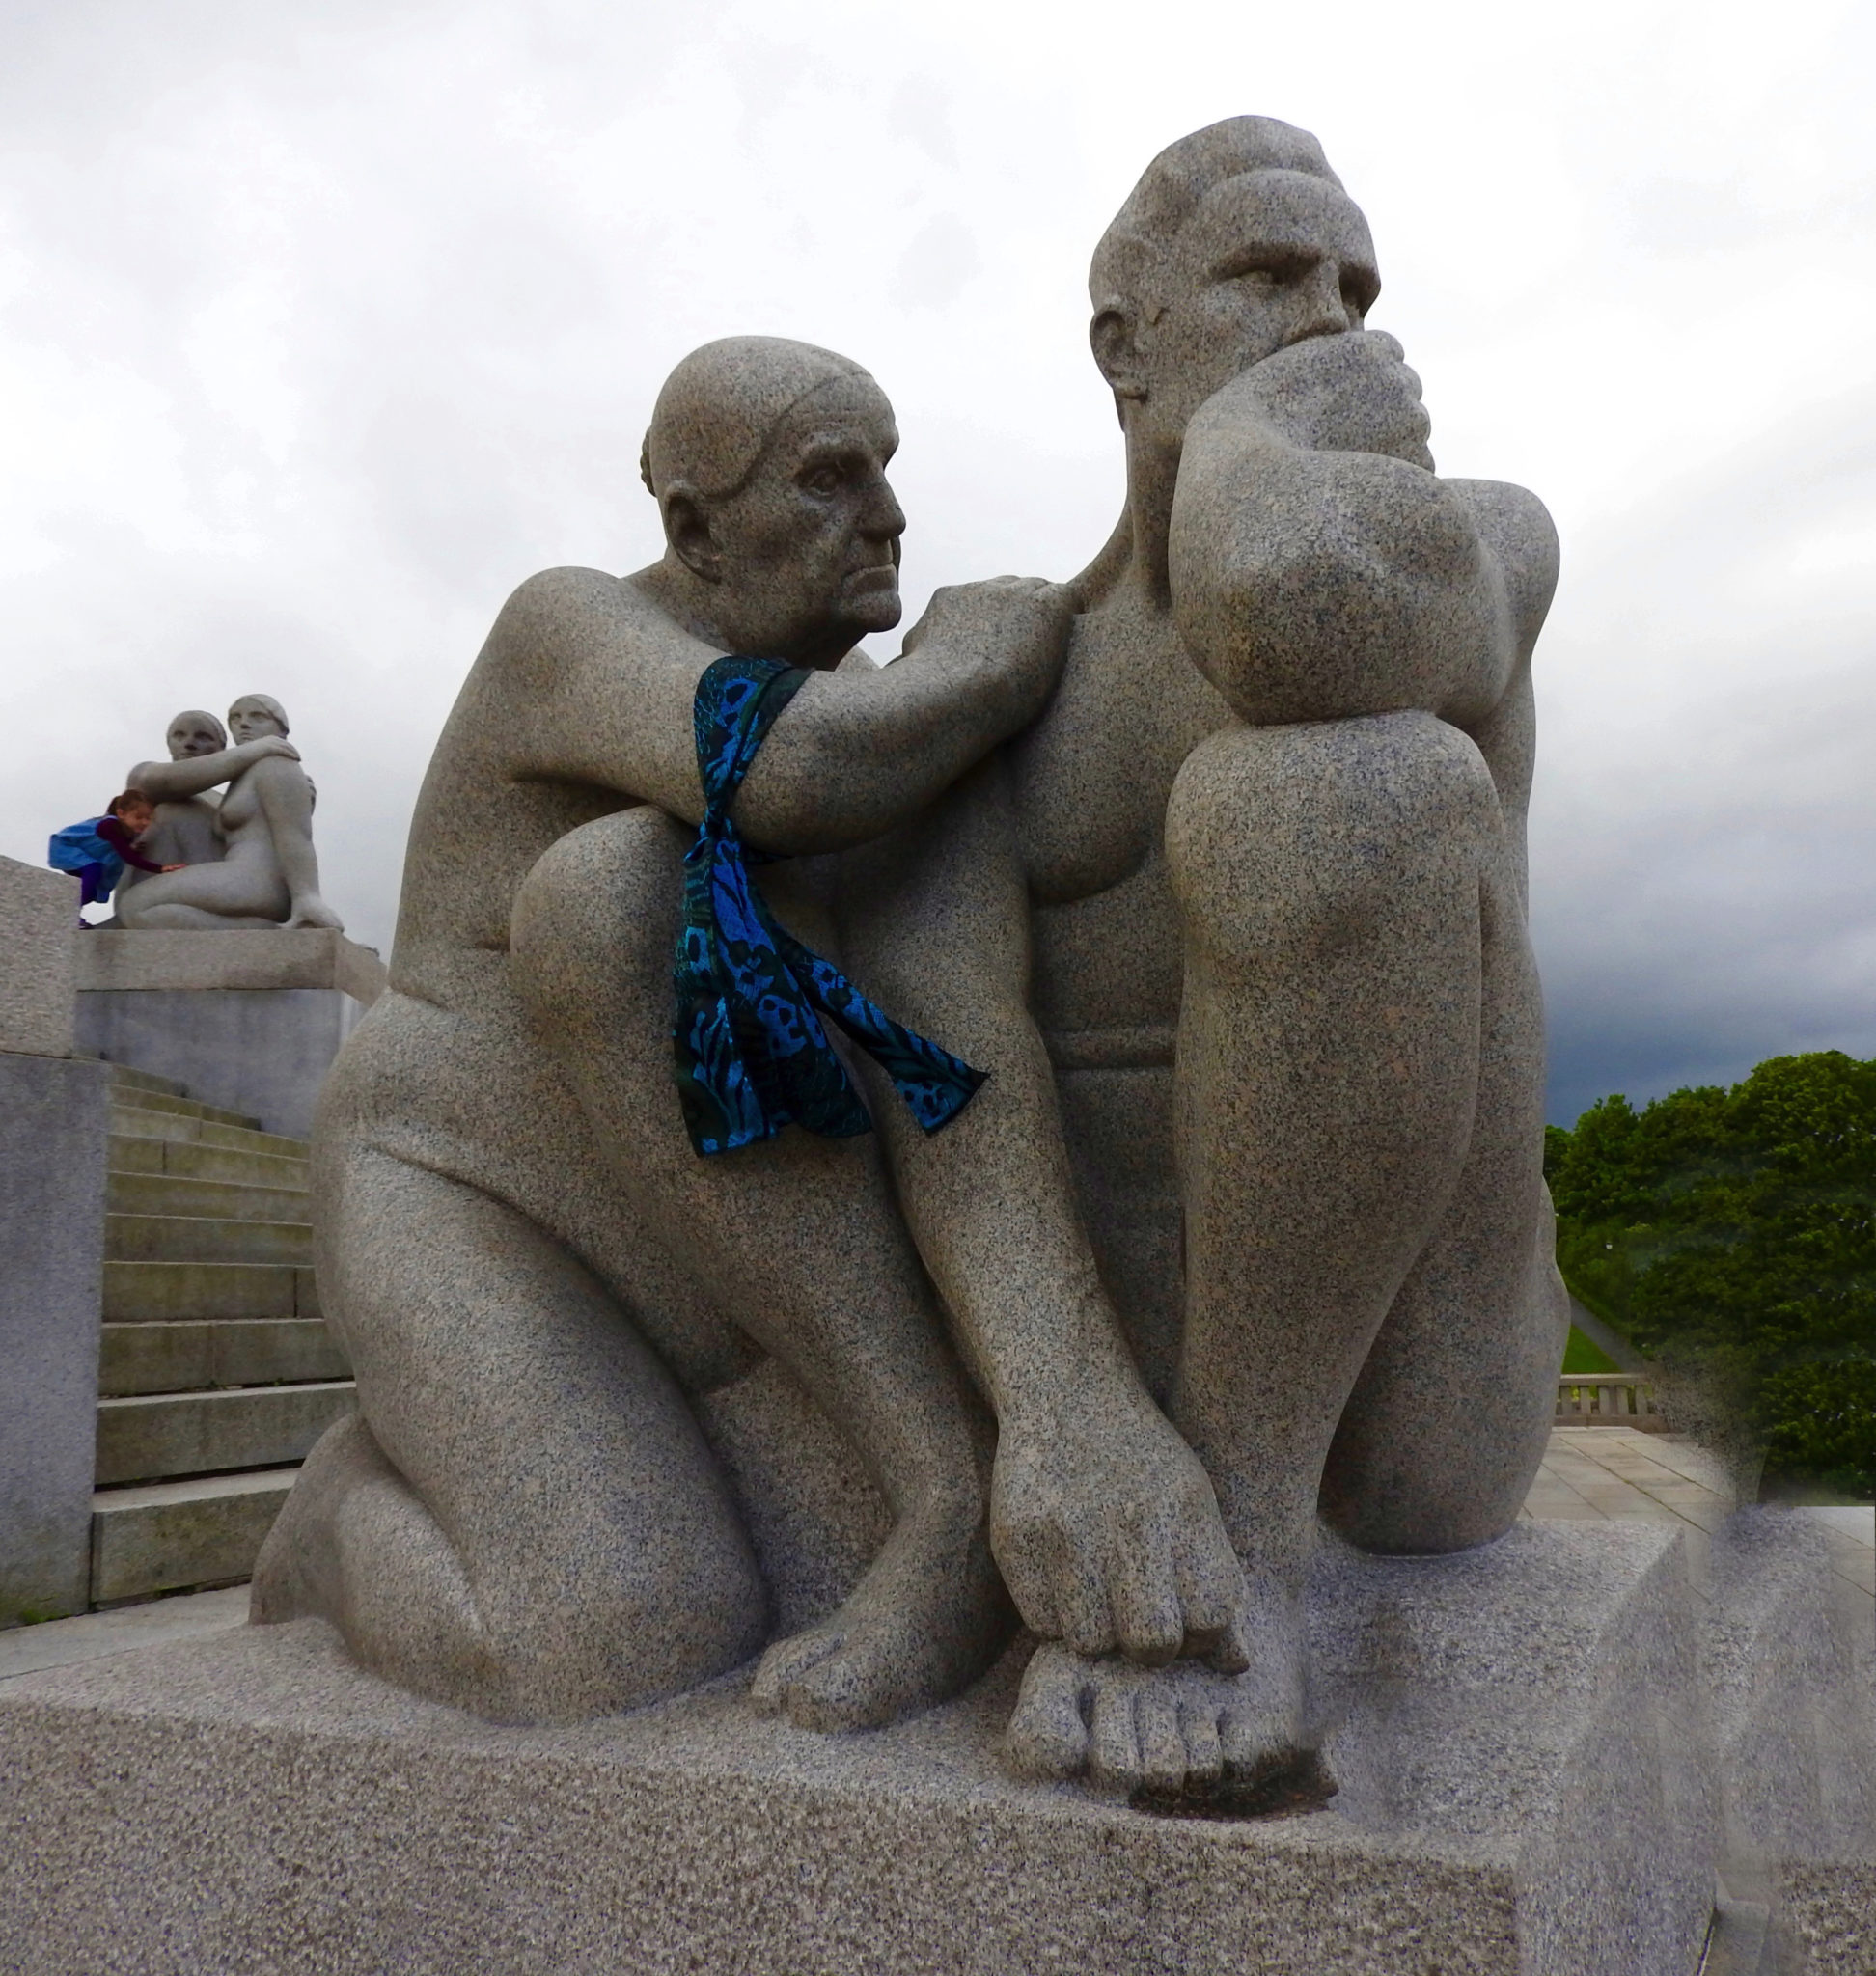 Large granite figures of a man and woman